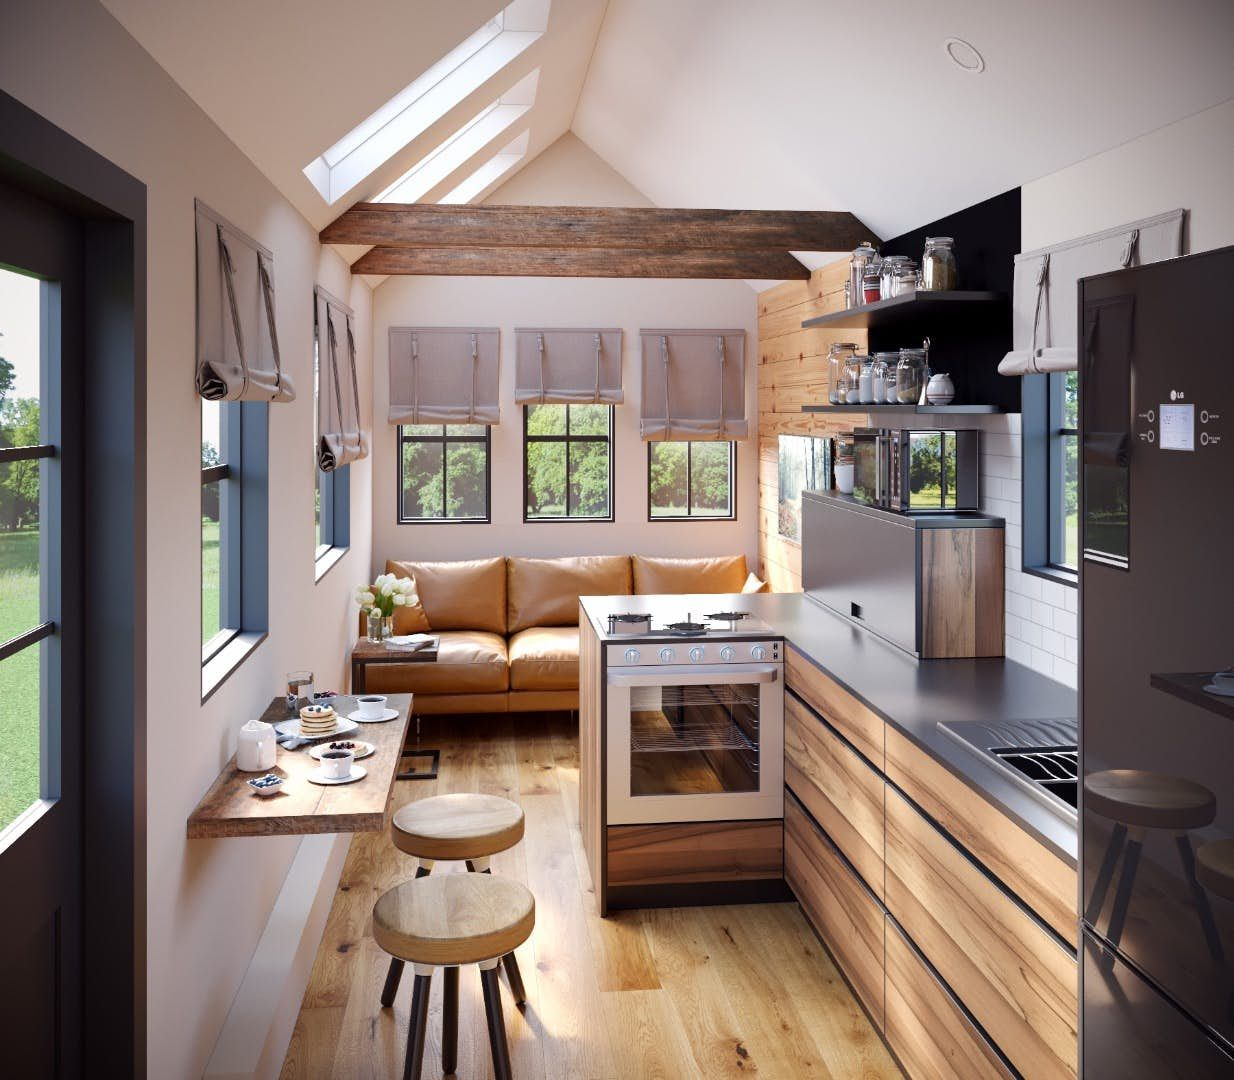 The Goose tiny house can fit the whole flock #houseinterior